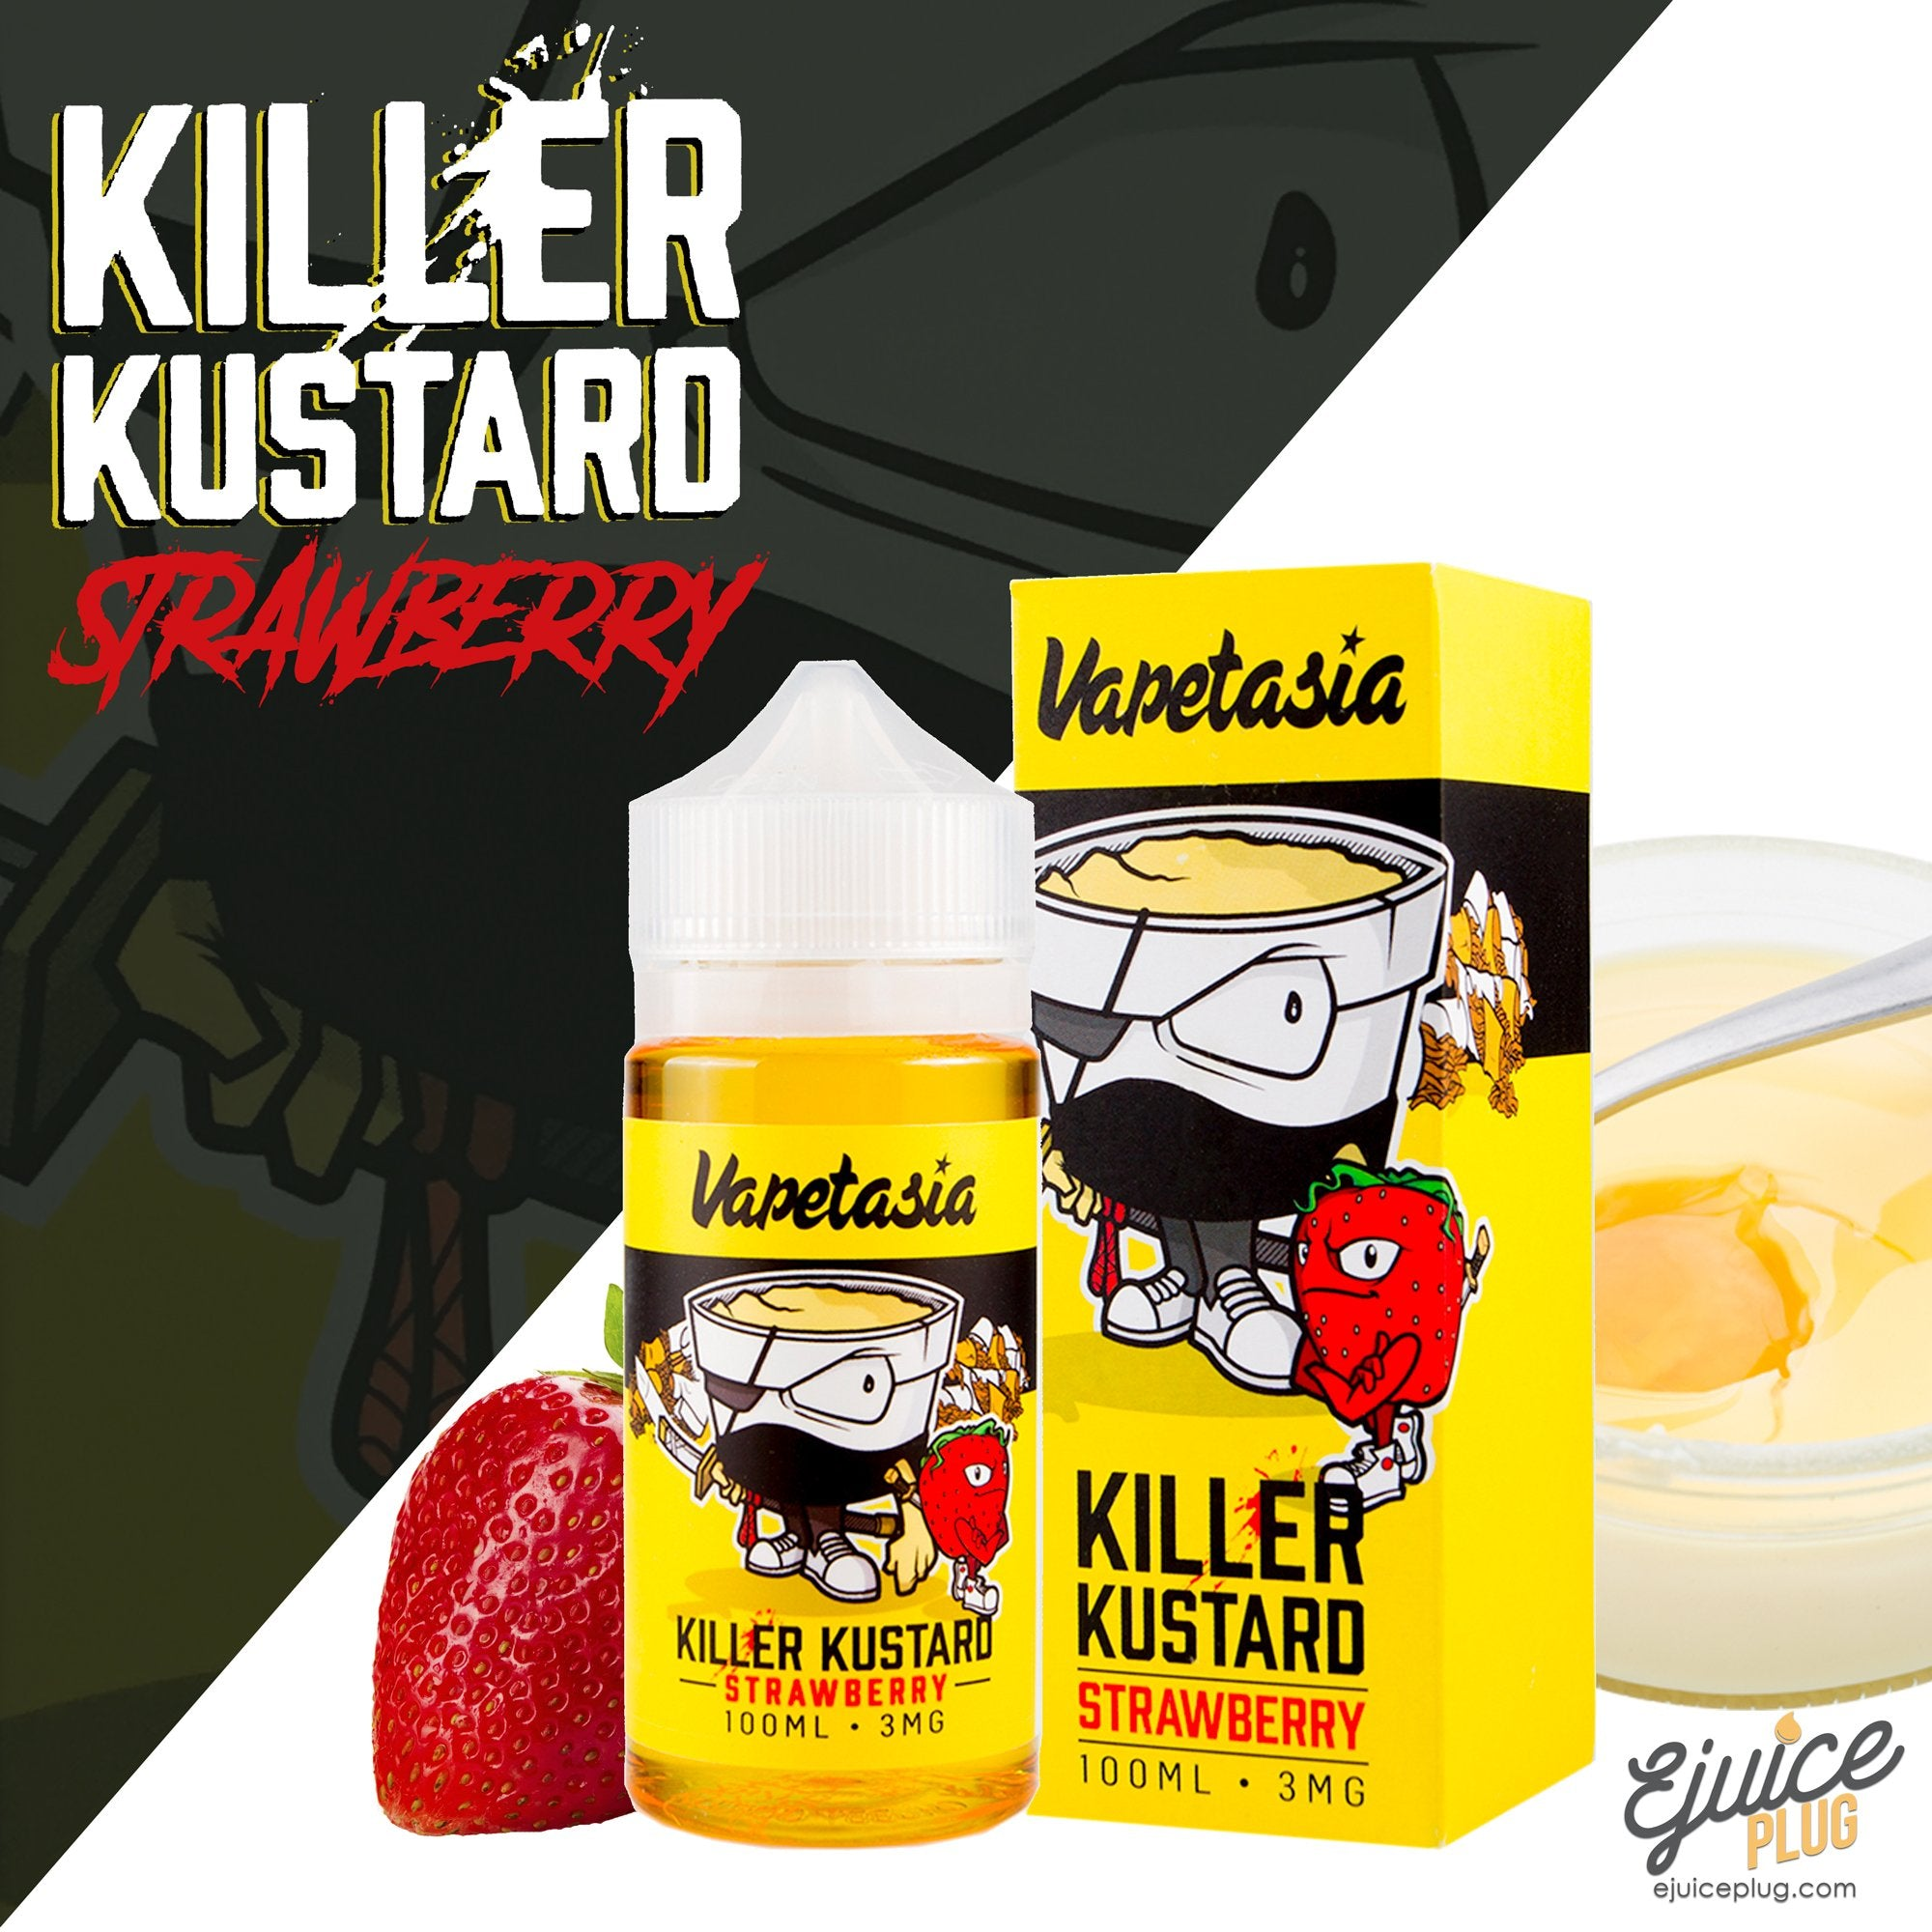 Vapetasia E-Liquid Strawberry Killer Kustard 100mL Product Image